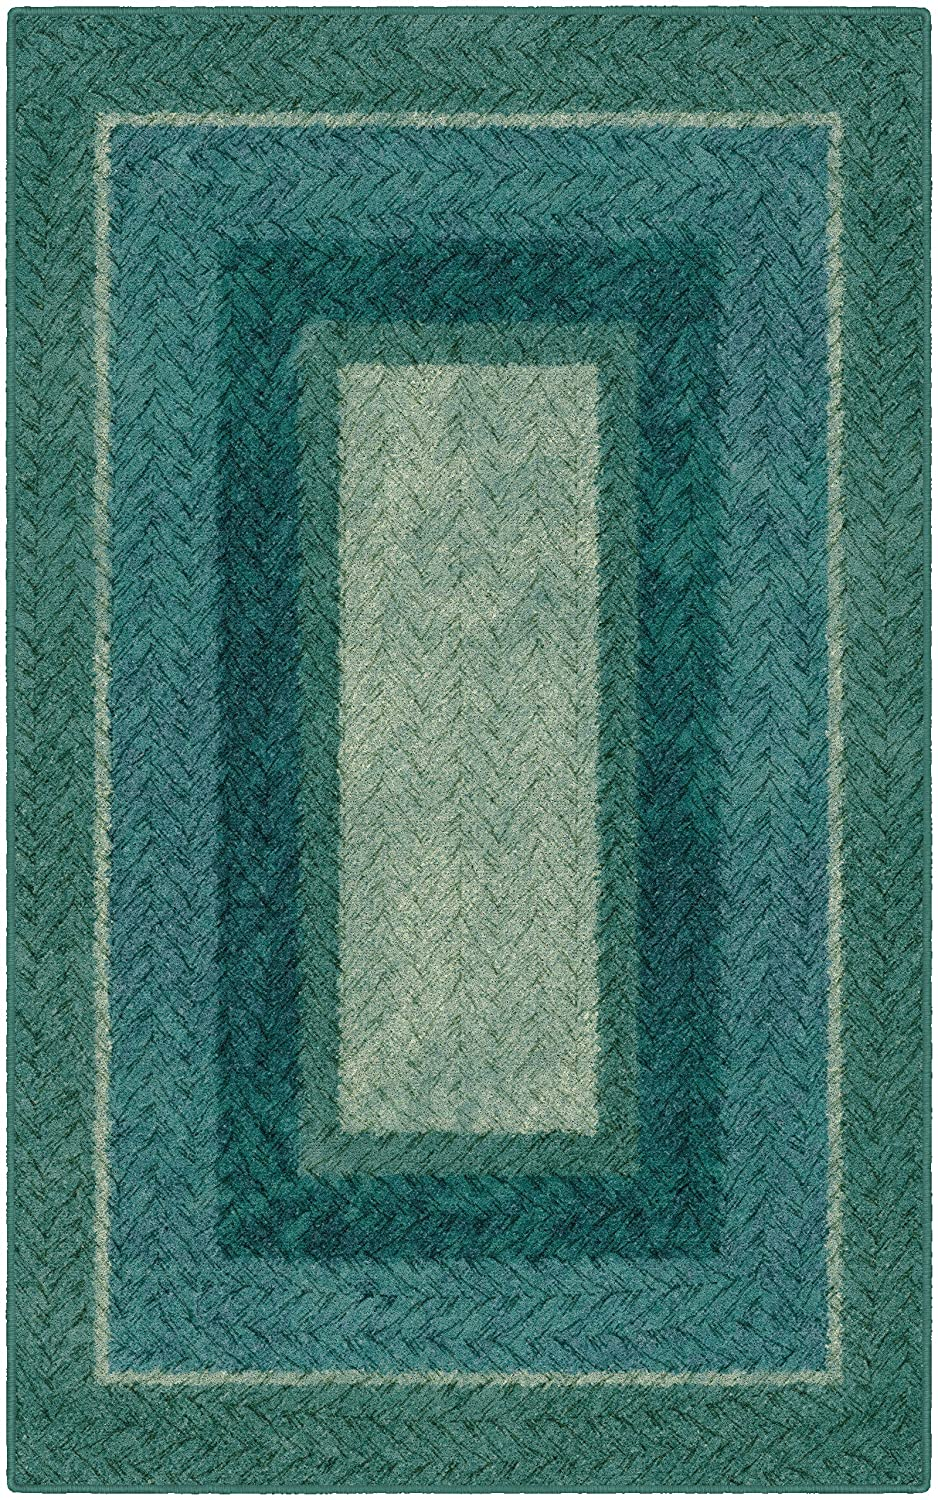 """Brumlow Mills Muted Braided Print Home Indoor Area Rug for Living Room Decor, Dining Room, Kitchen Rug, or Bedroom, 2'6"""" x 3'10"""", Teal,EW10155-30x46"""